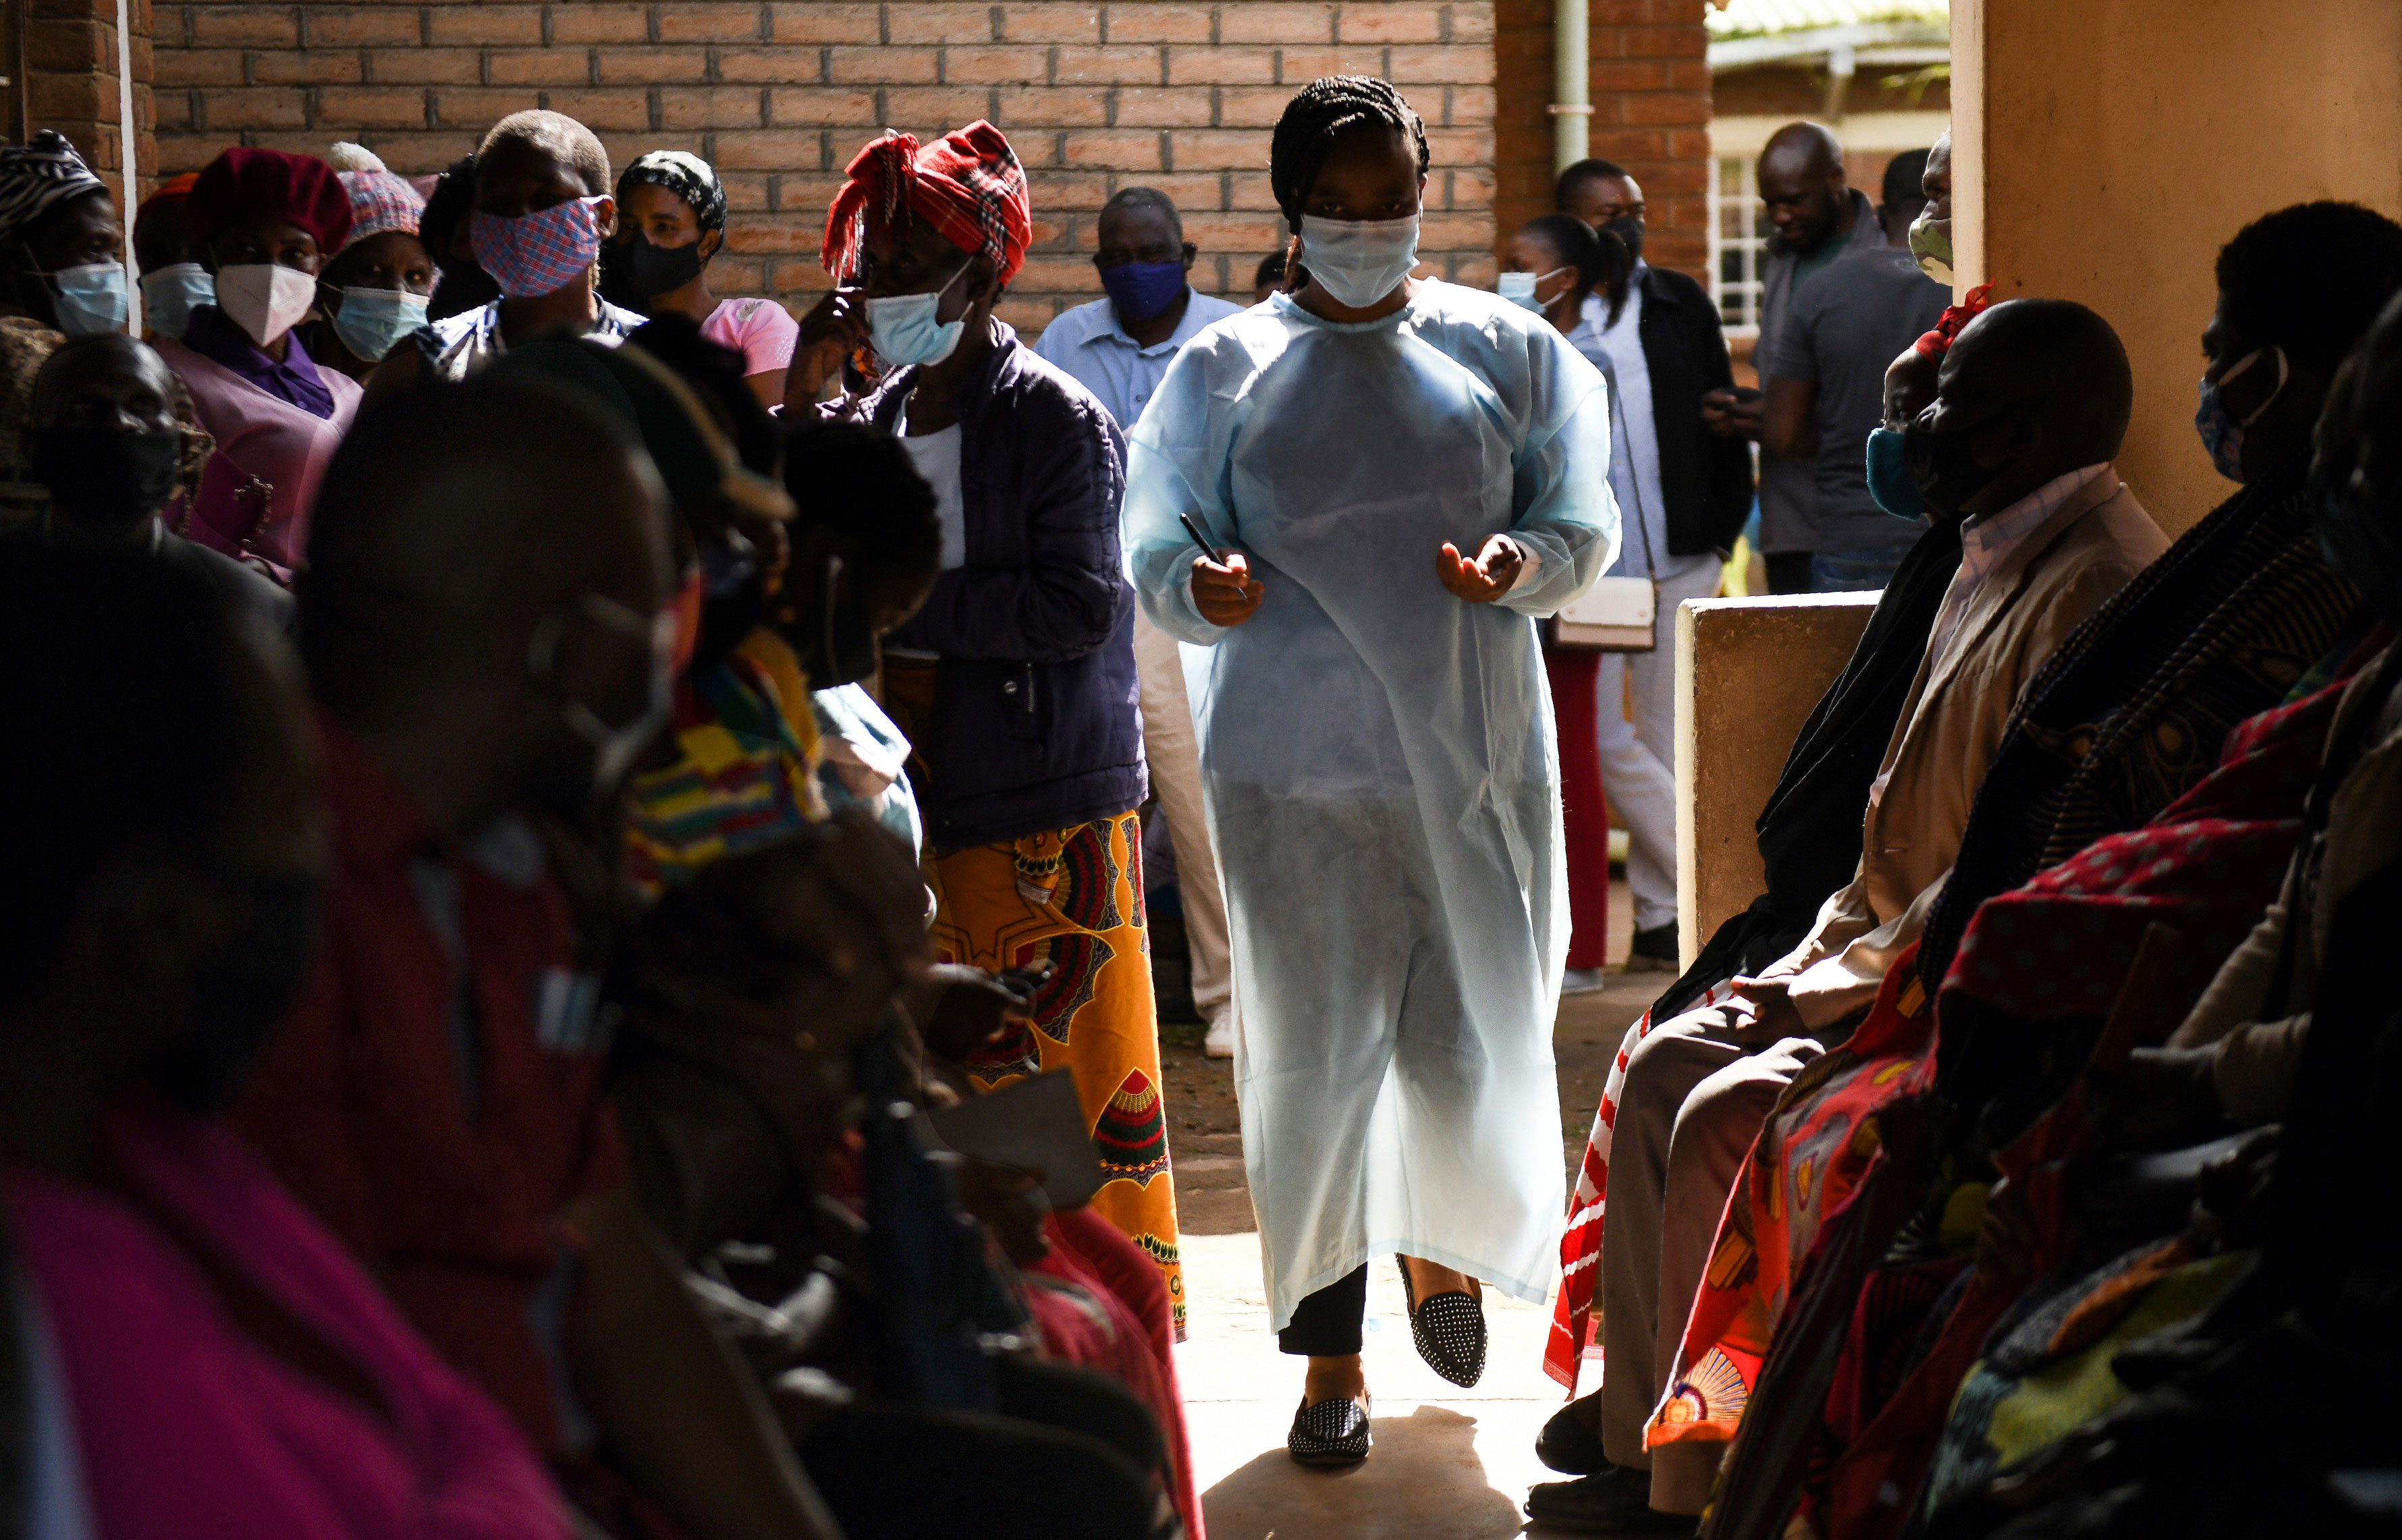 Numbers are handed out to people waiting to receive the AstraZeneca Covid-19 vaccine at a health center in Blantyre, Malawi, on March 29.